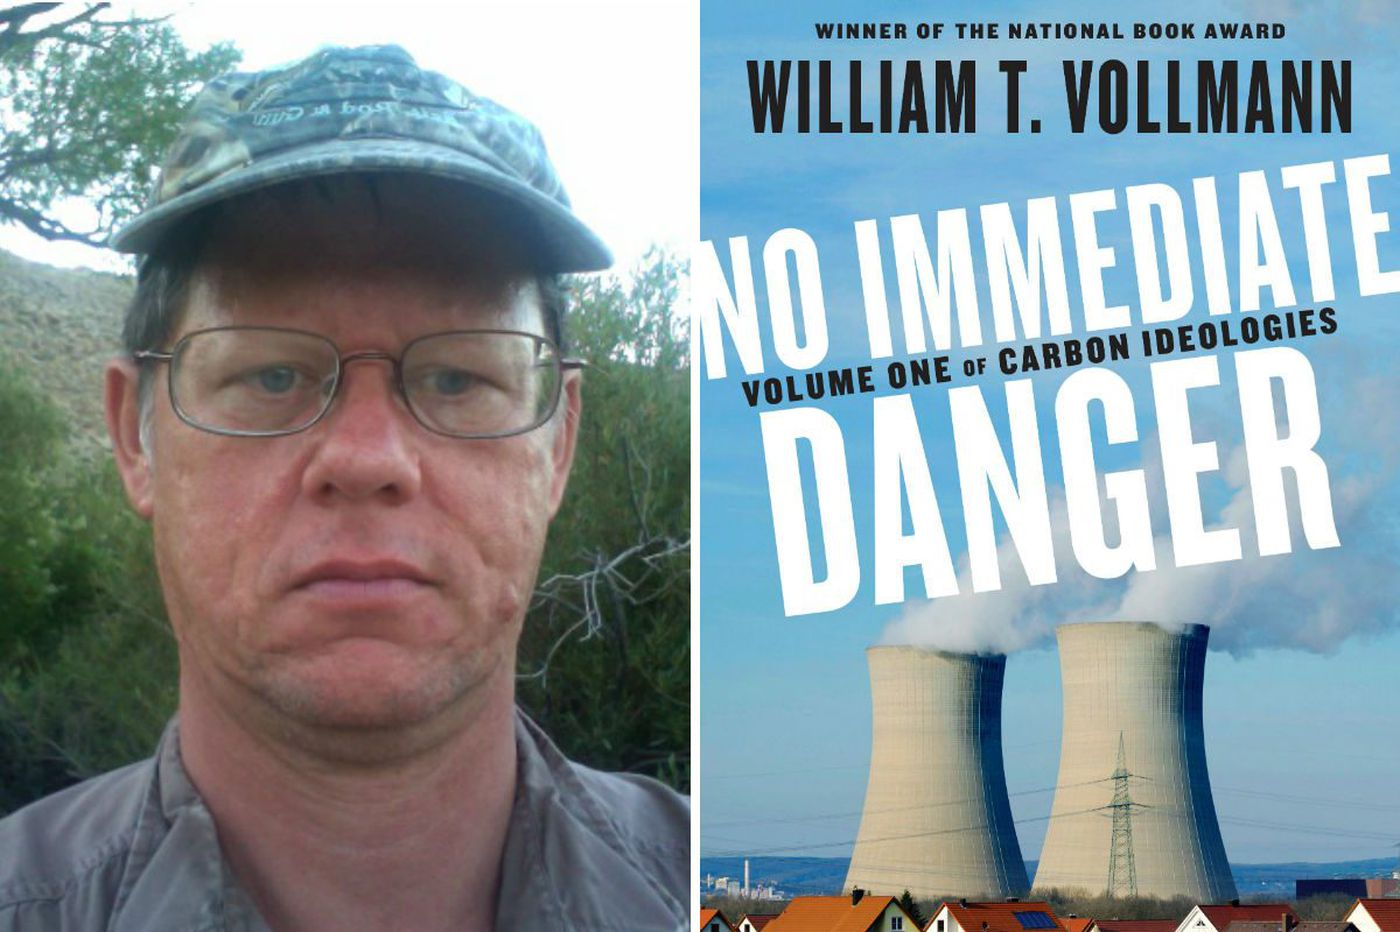 William T. Vollmann's 'No Immediate Danger': A searing indictment of climate denial, who we are, what we've done